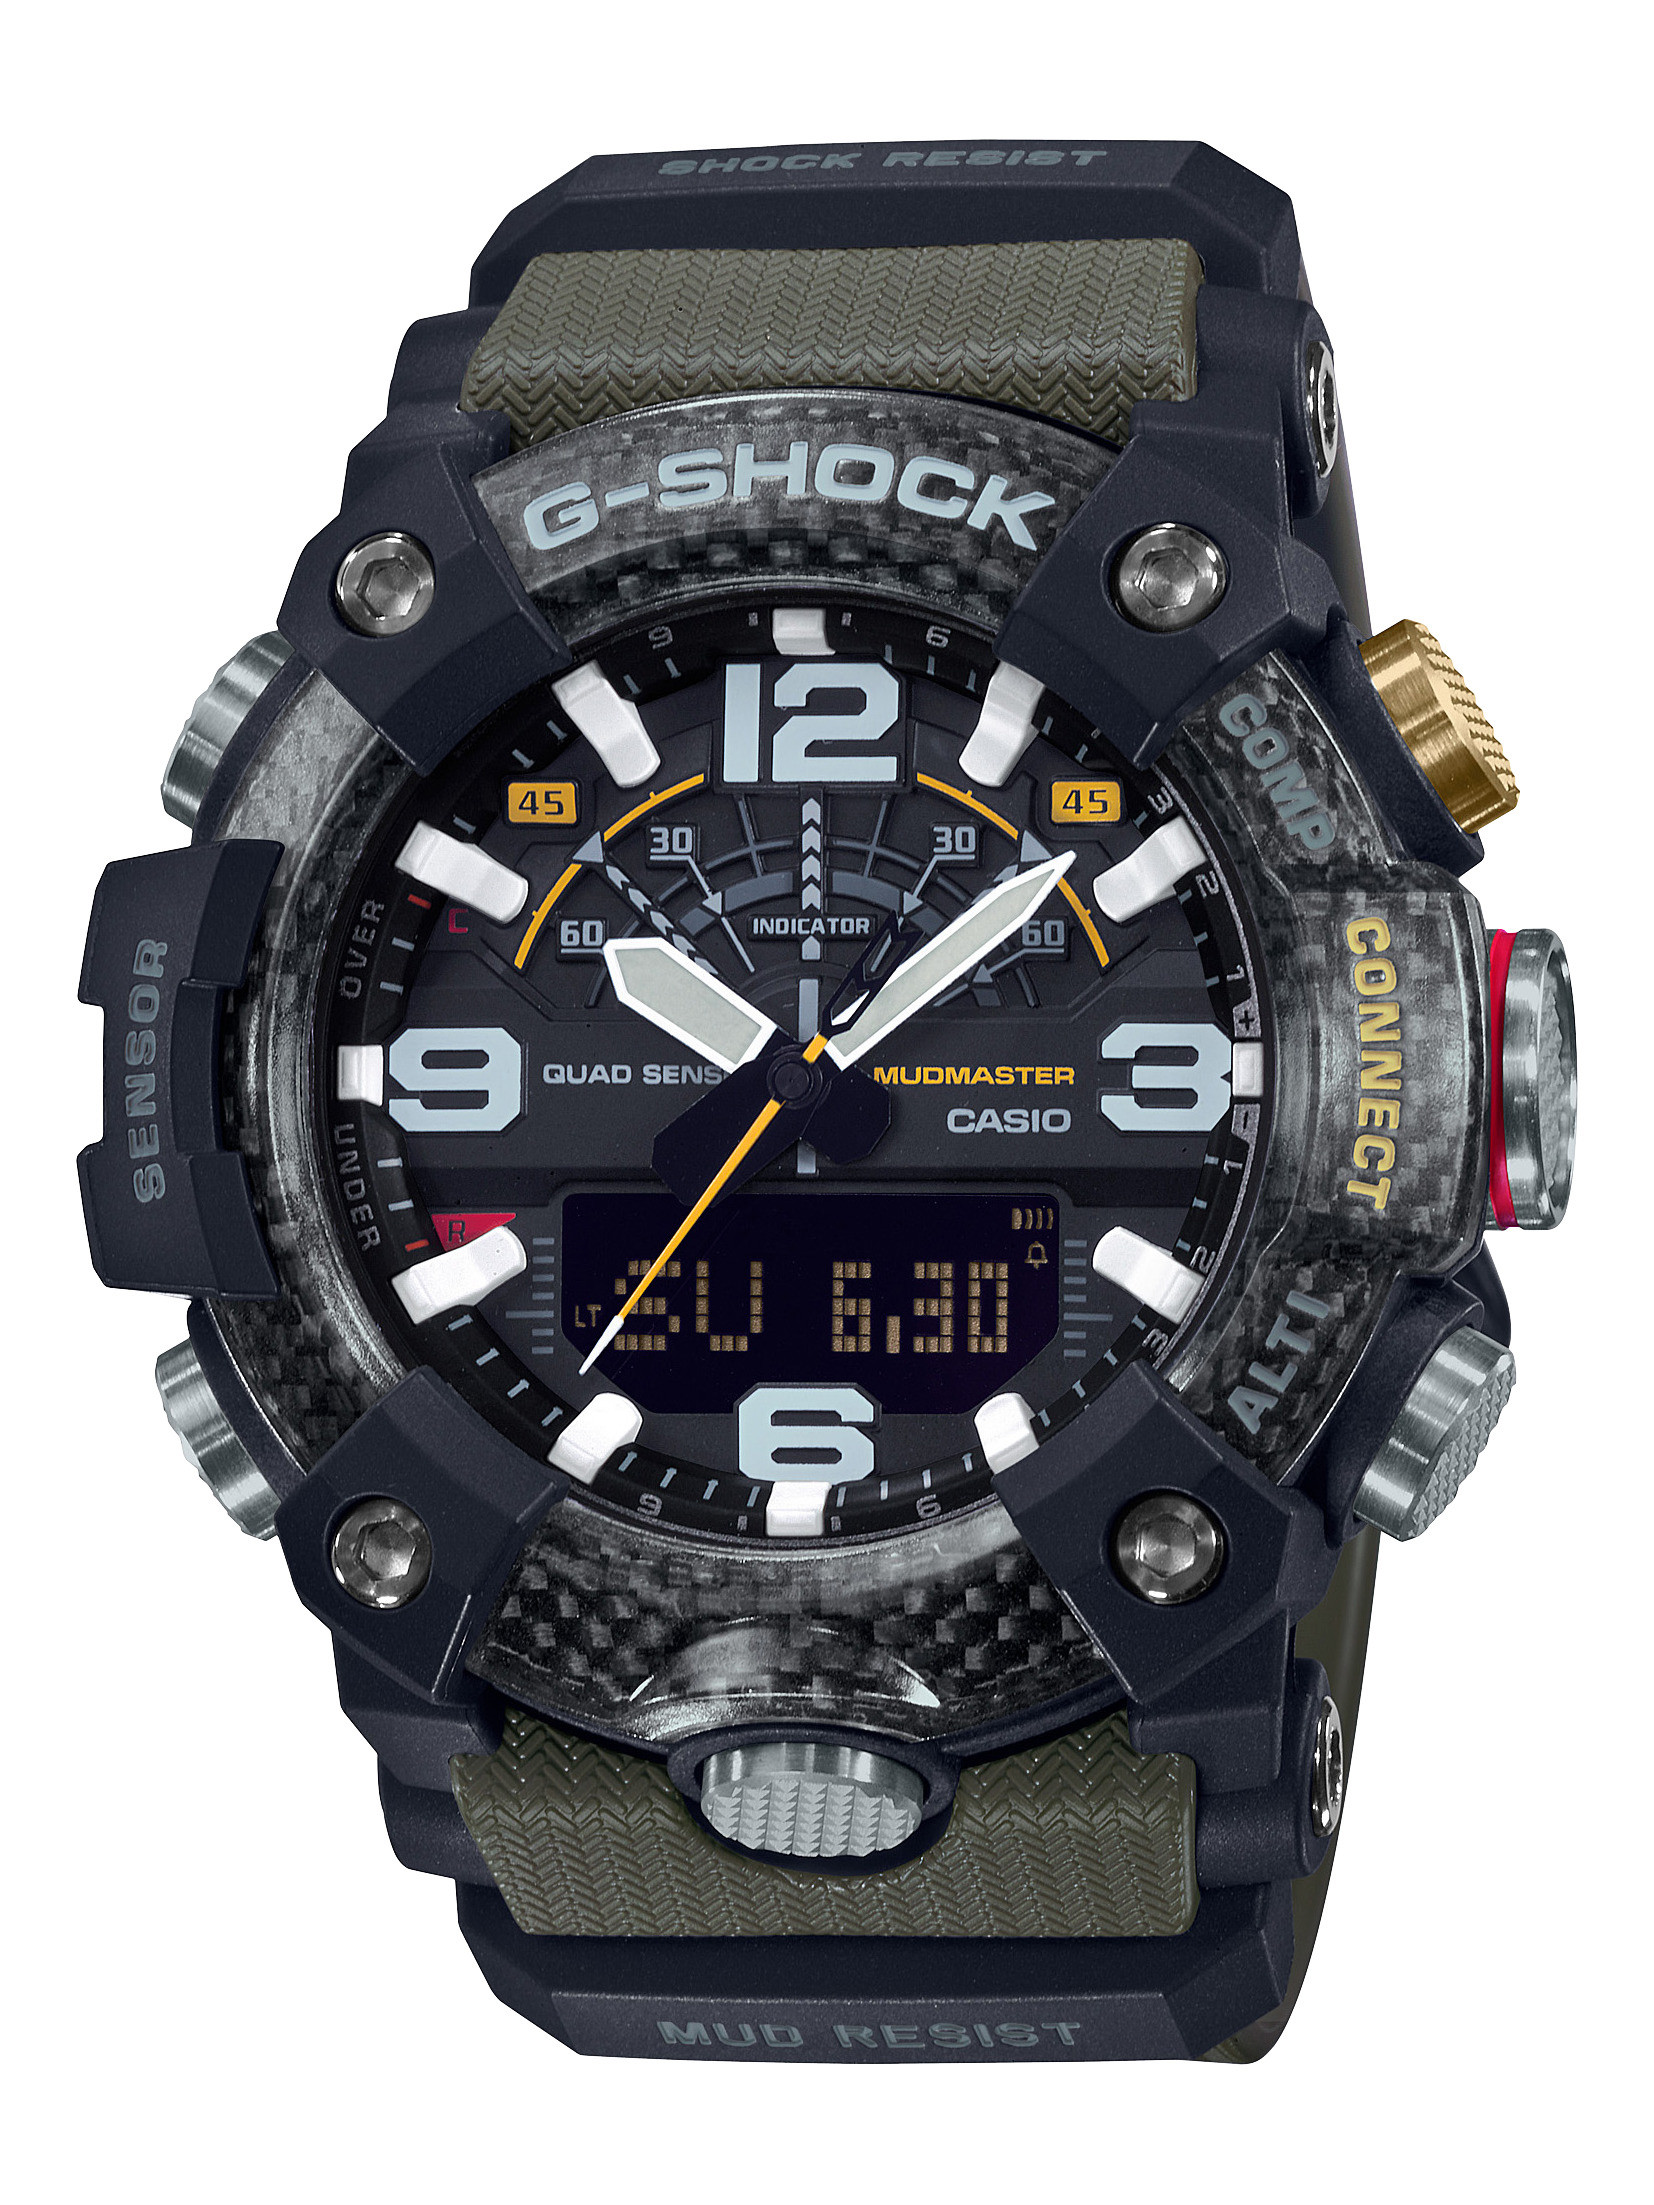 G-Shock Carbon Core Green and Black Mudmaster Watch front view